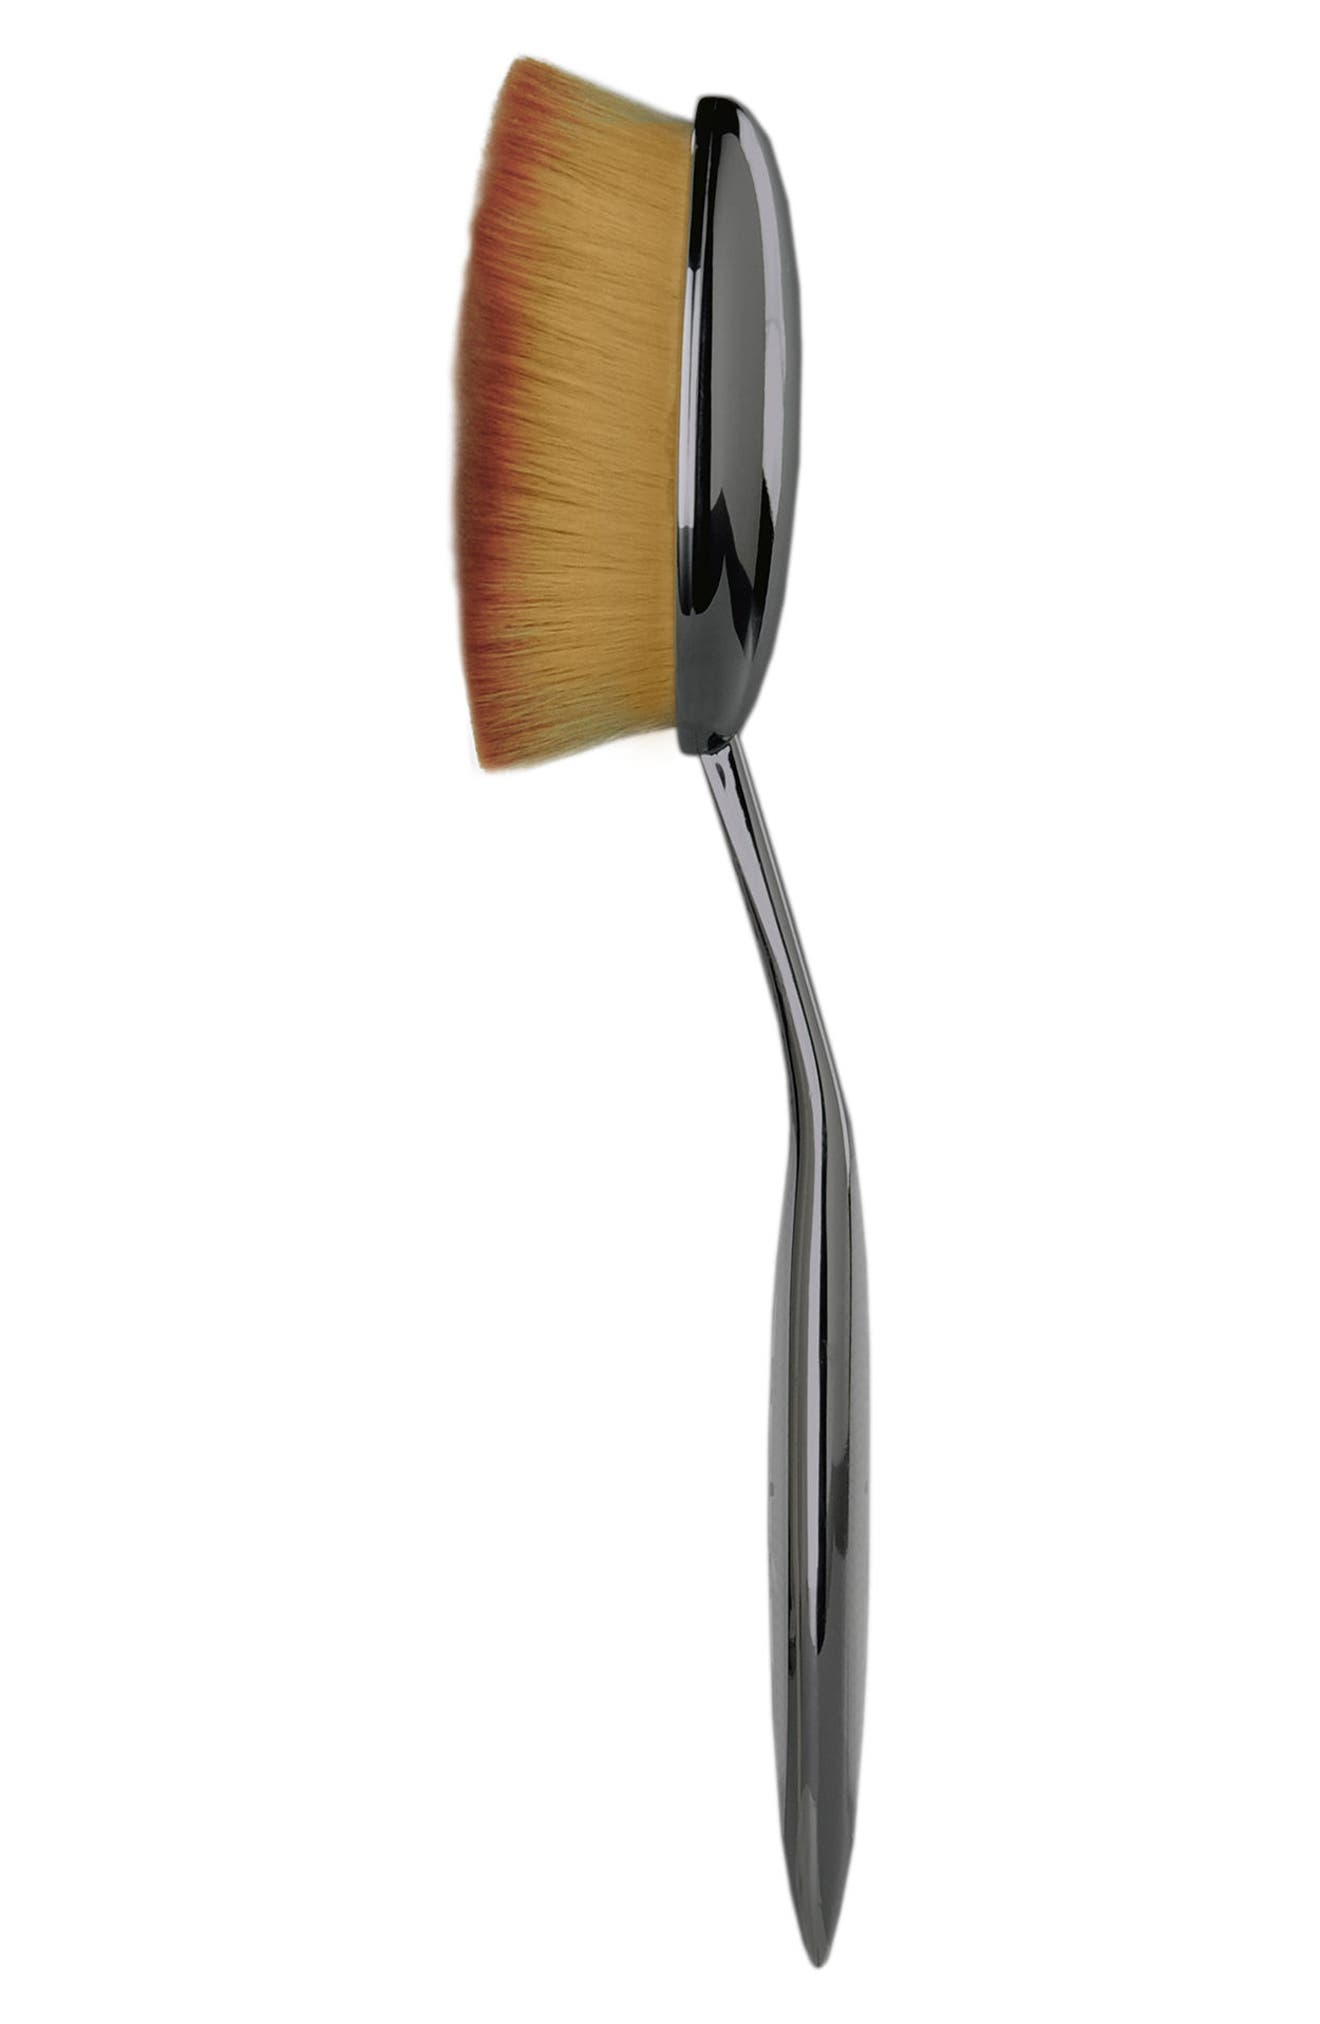 Artis Elite Smoke Oval 10 Brush